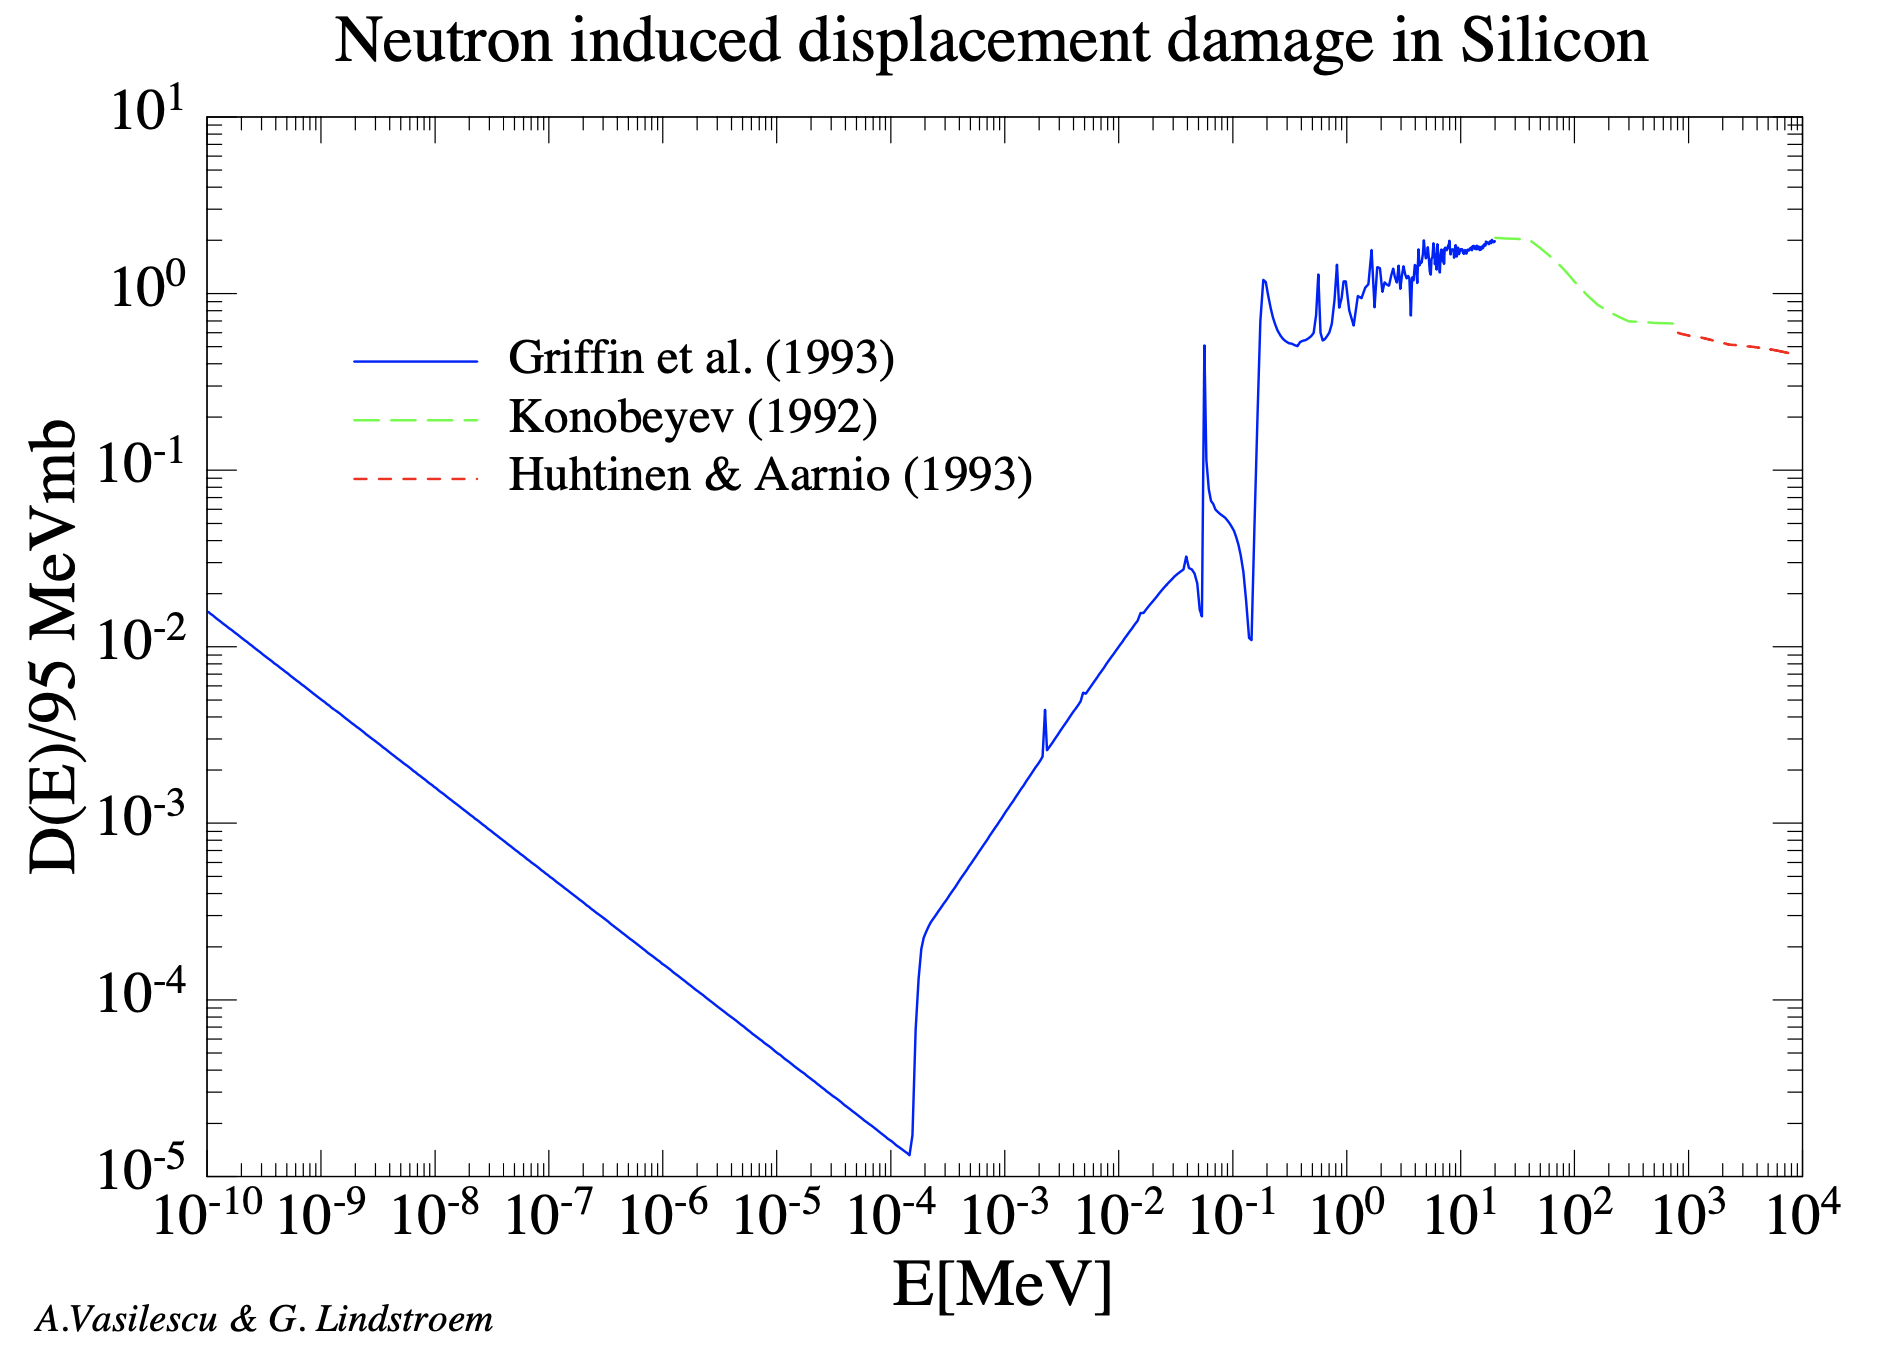 Curve of dose damage ratio for neutrons as a function of energy